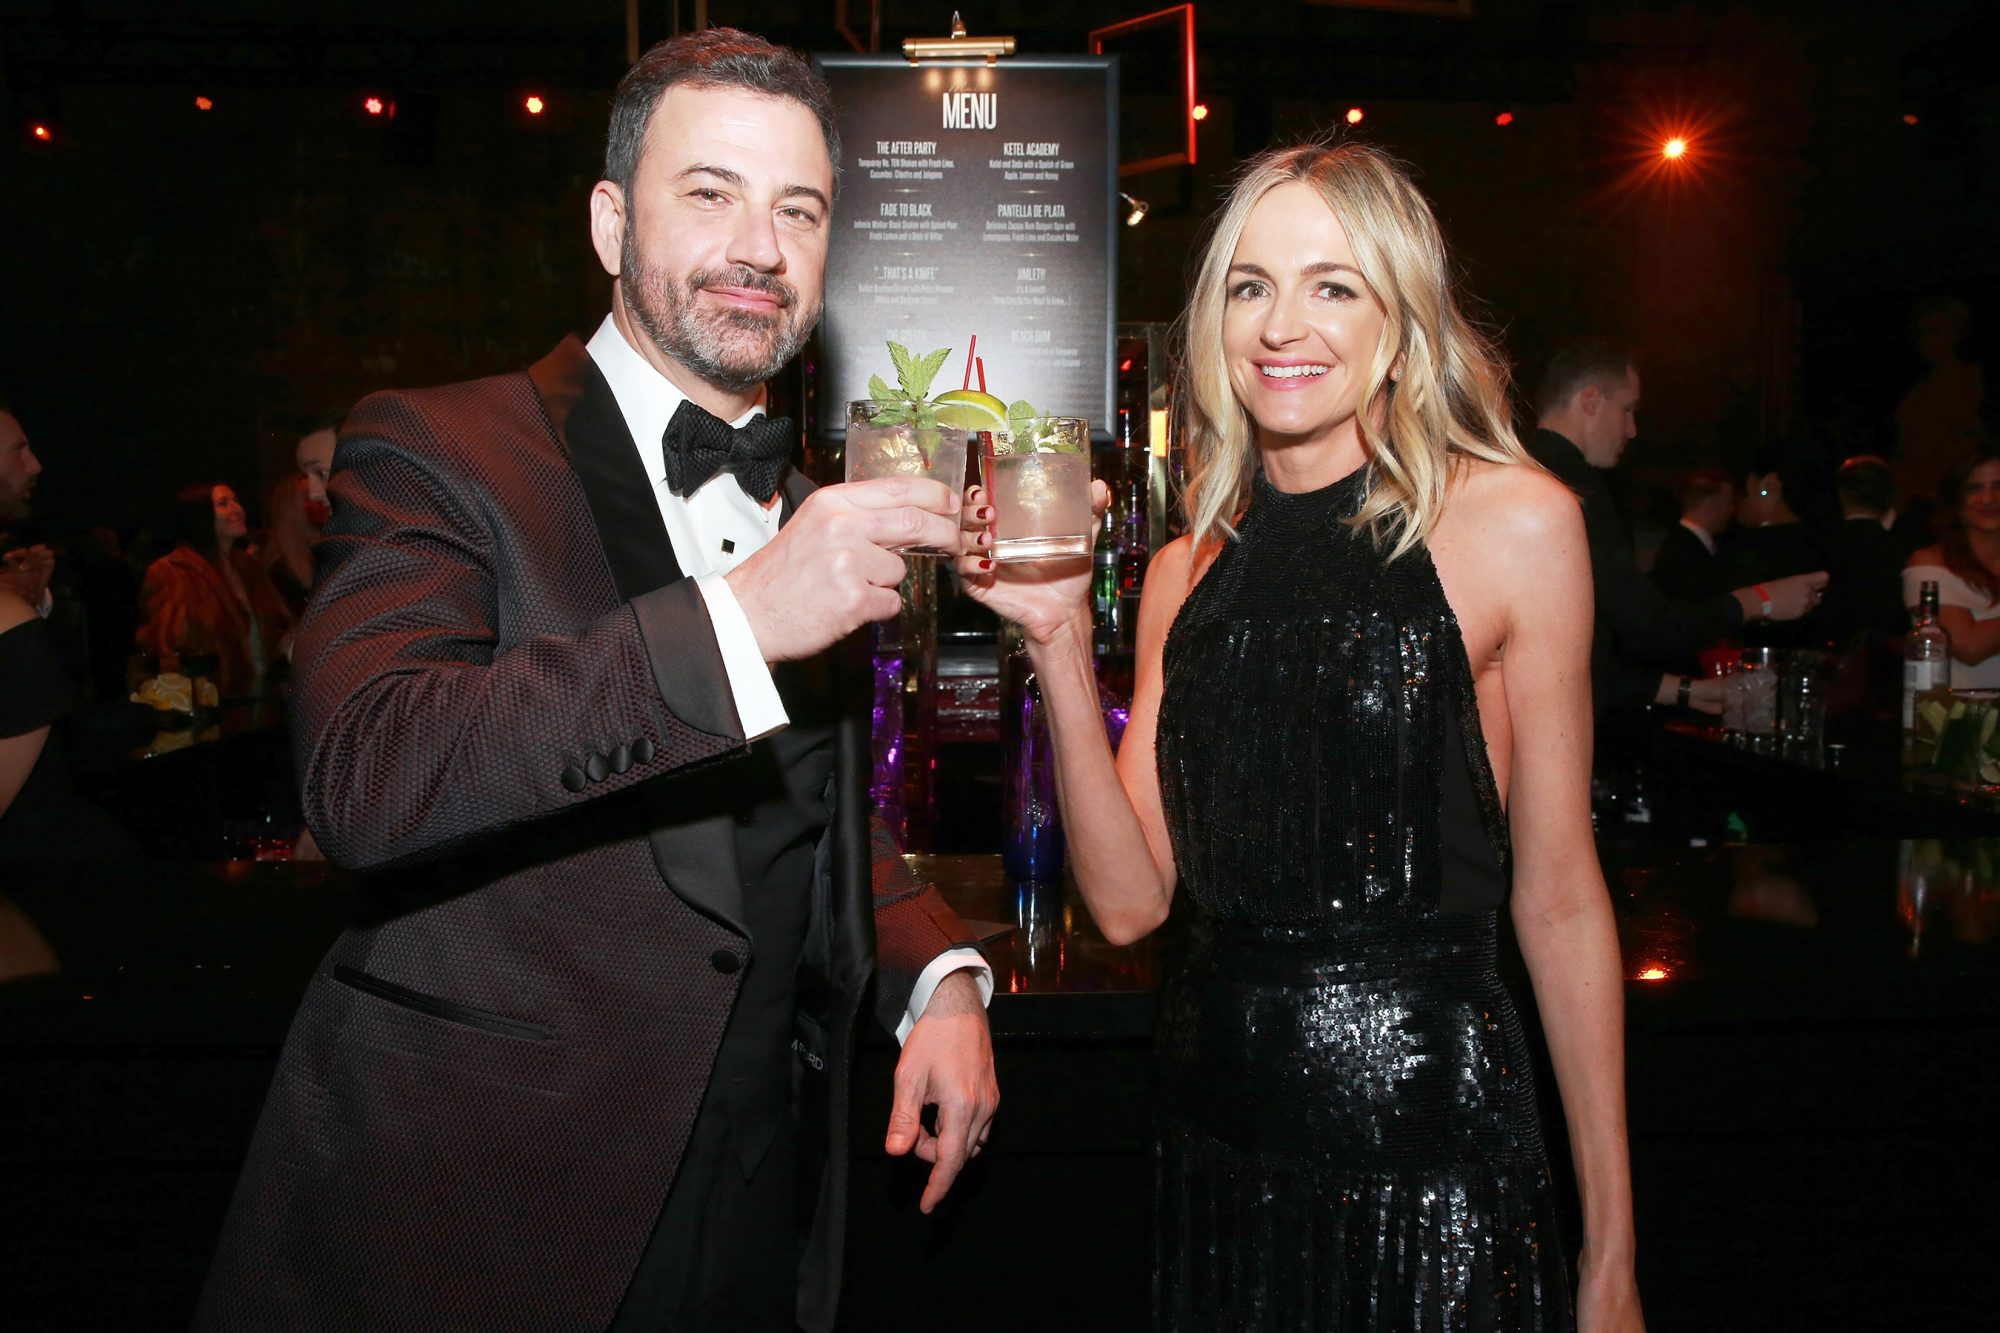 Jimmy Kimmel celebrates with Tequila Don Julio and Ciroc at his post-show after-party for Hollywood's biggest night at The Lot